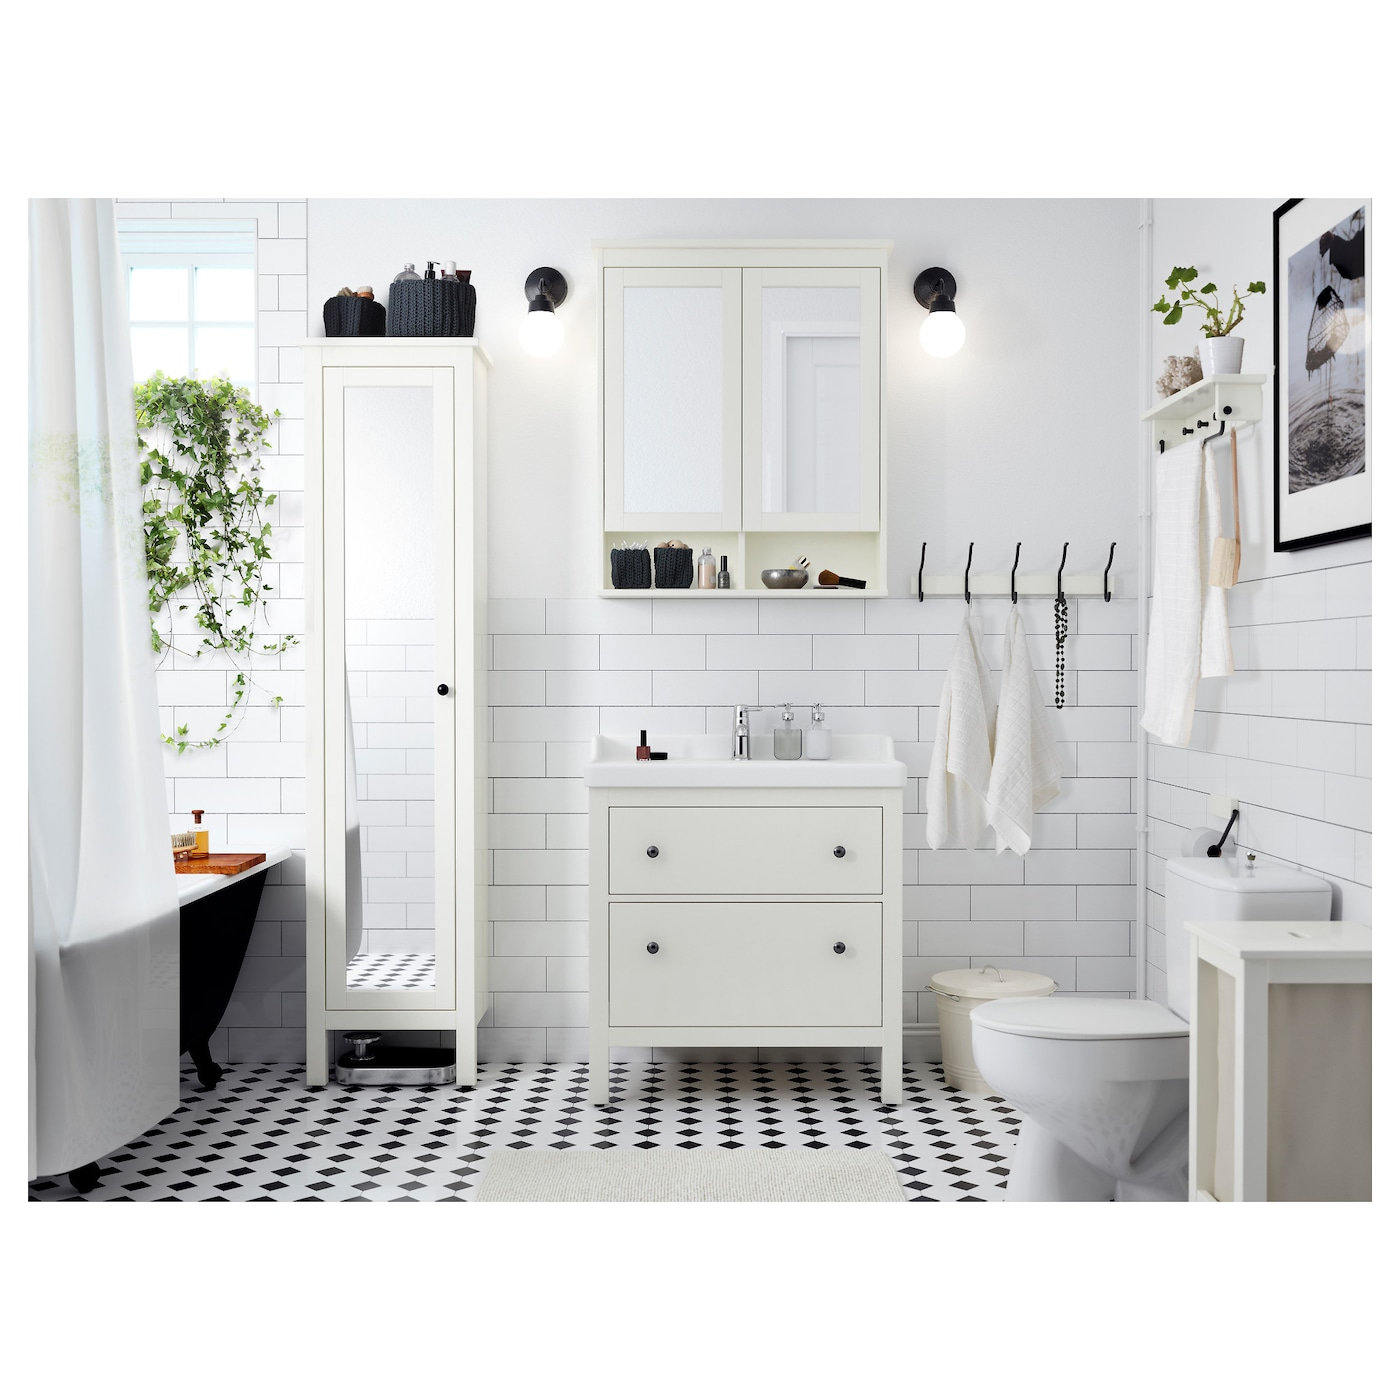 Hemnes mirror cabinet with 2 doors white 83x16x98 cm ikea for Salle de bain ikea 3d